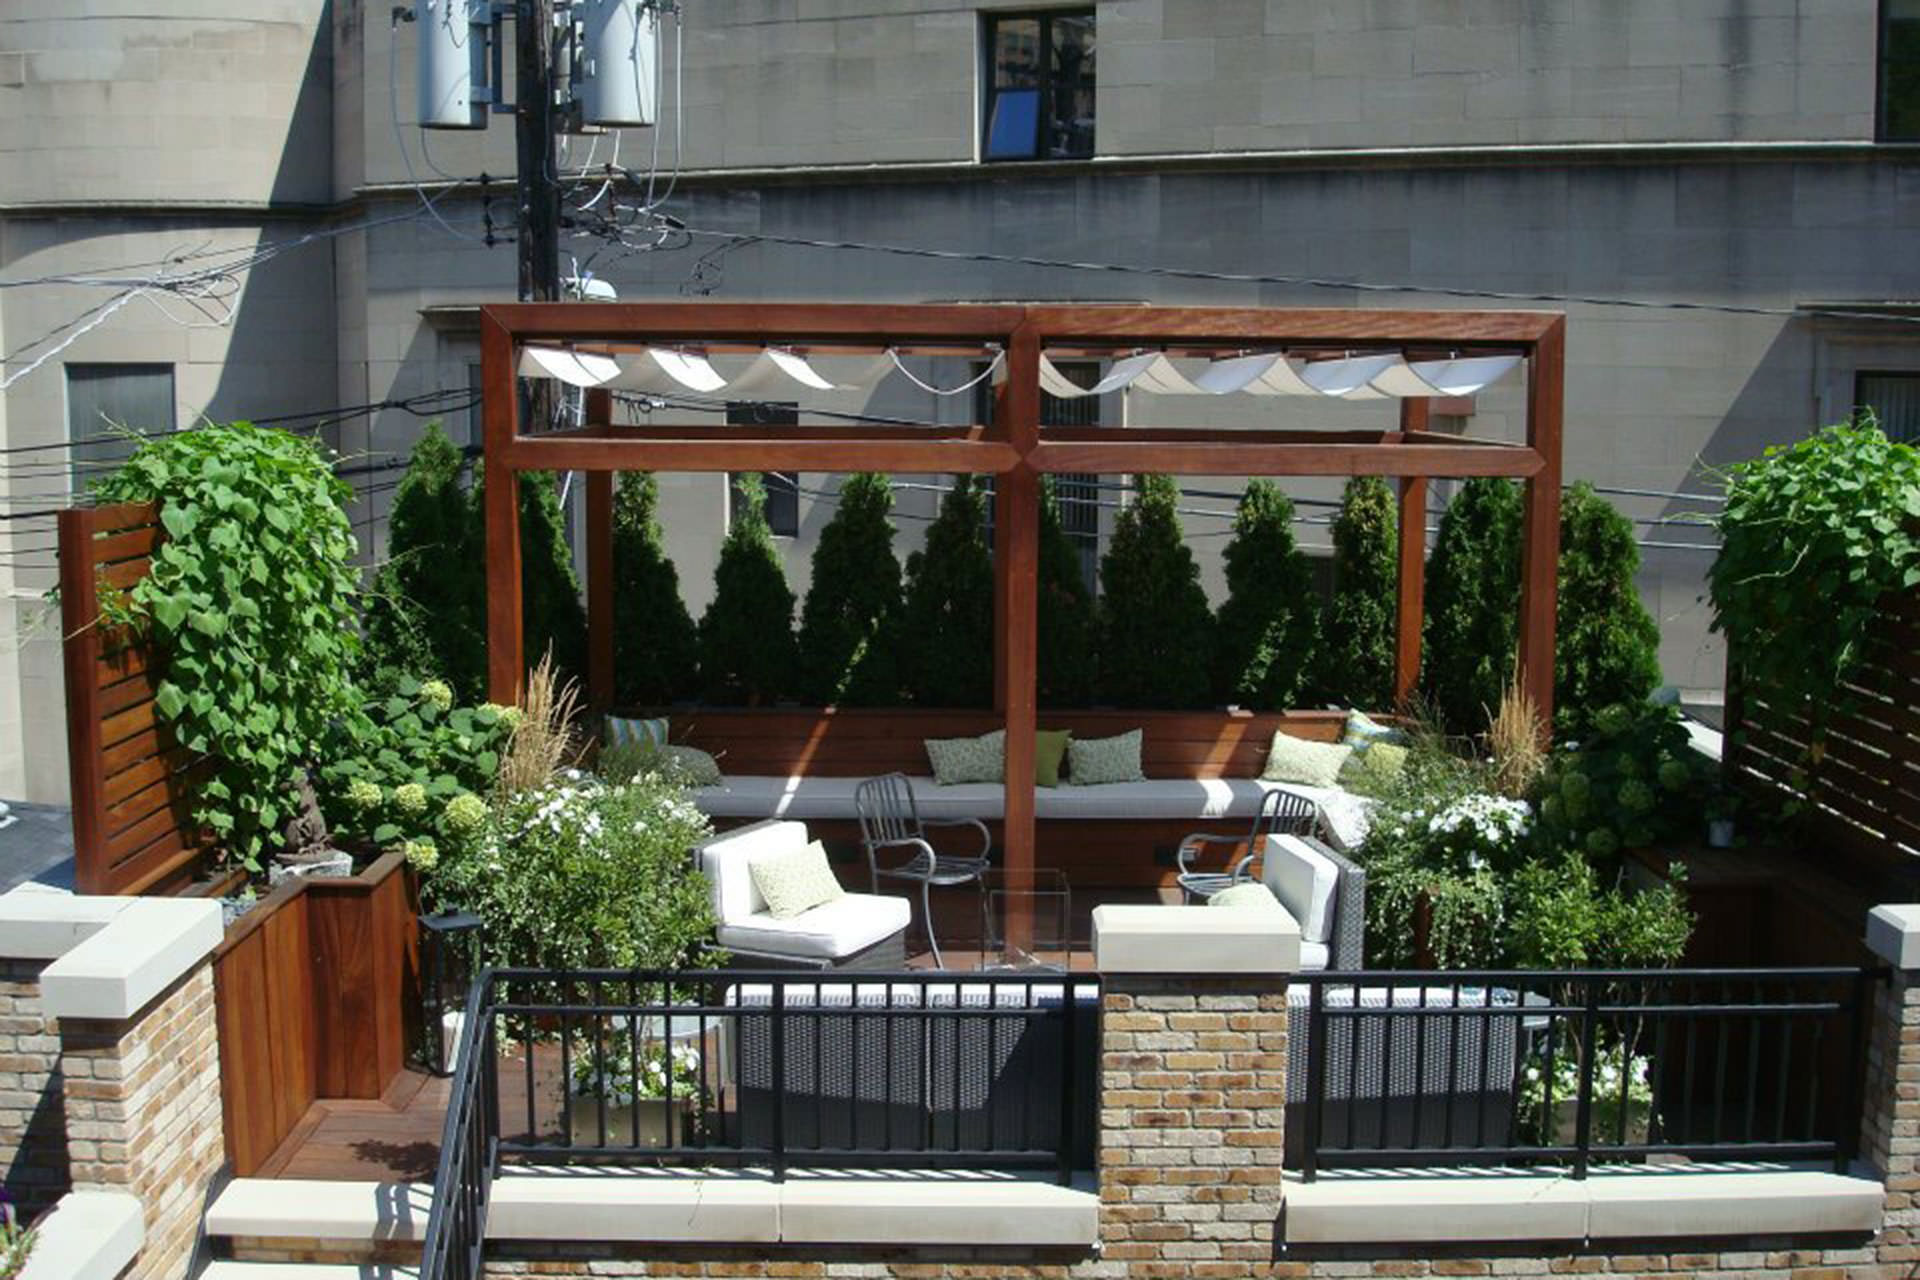 Pergola Shade: Pratical Solutions for Every Outdoor Space - Pergola Sliding Shade